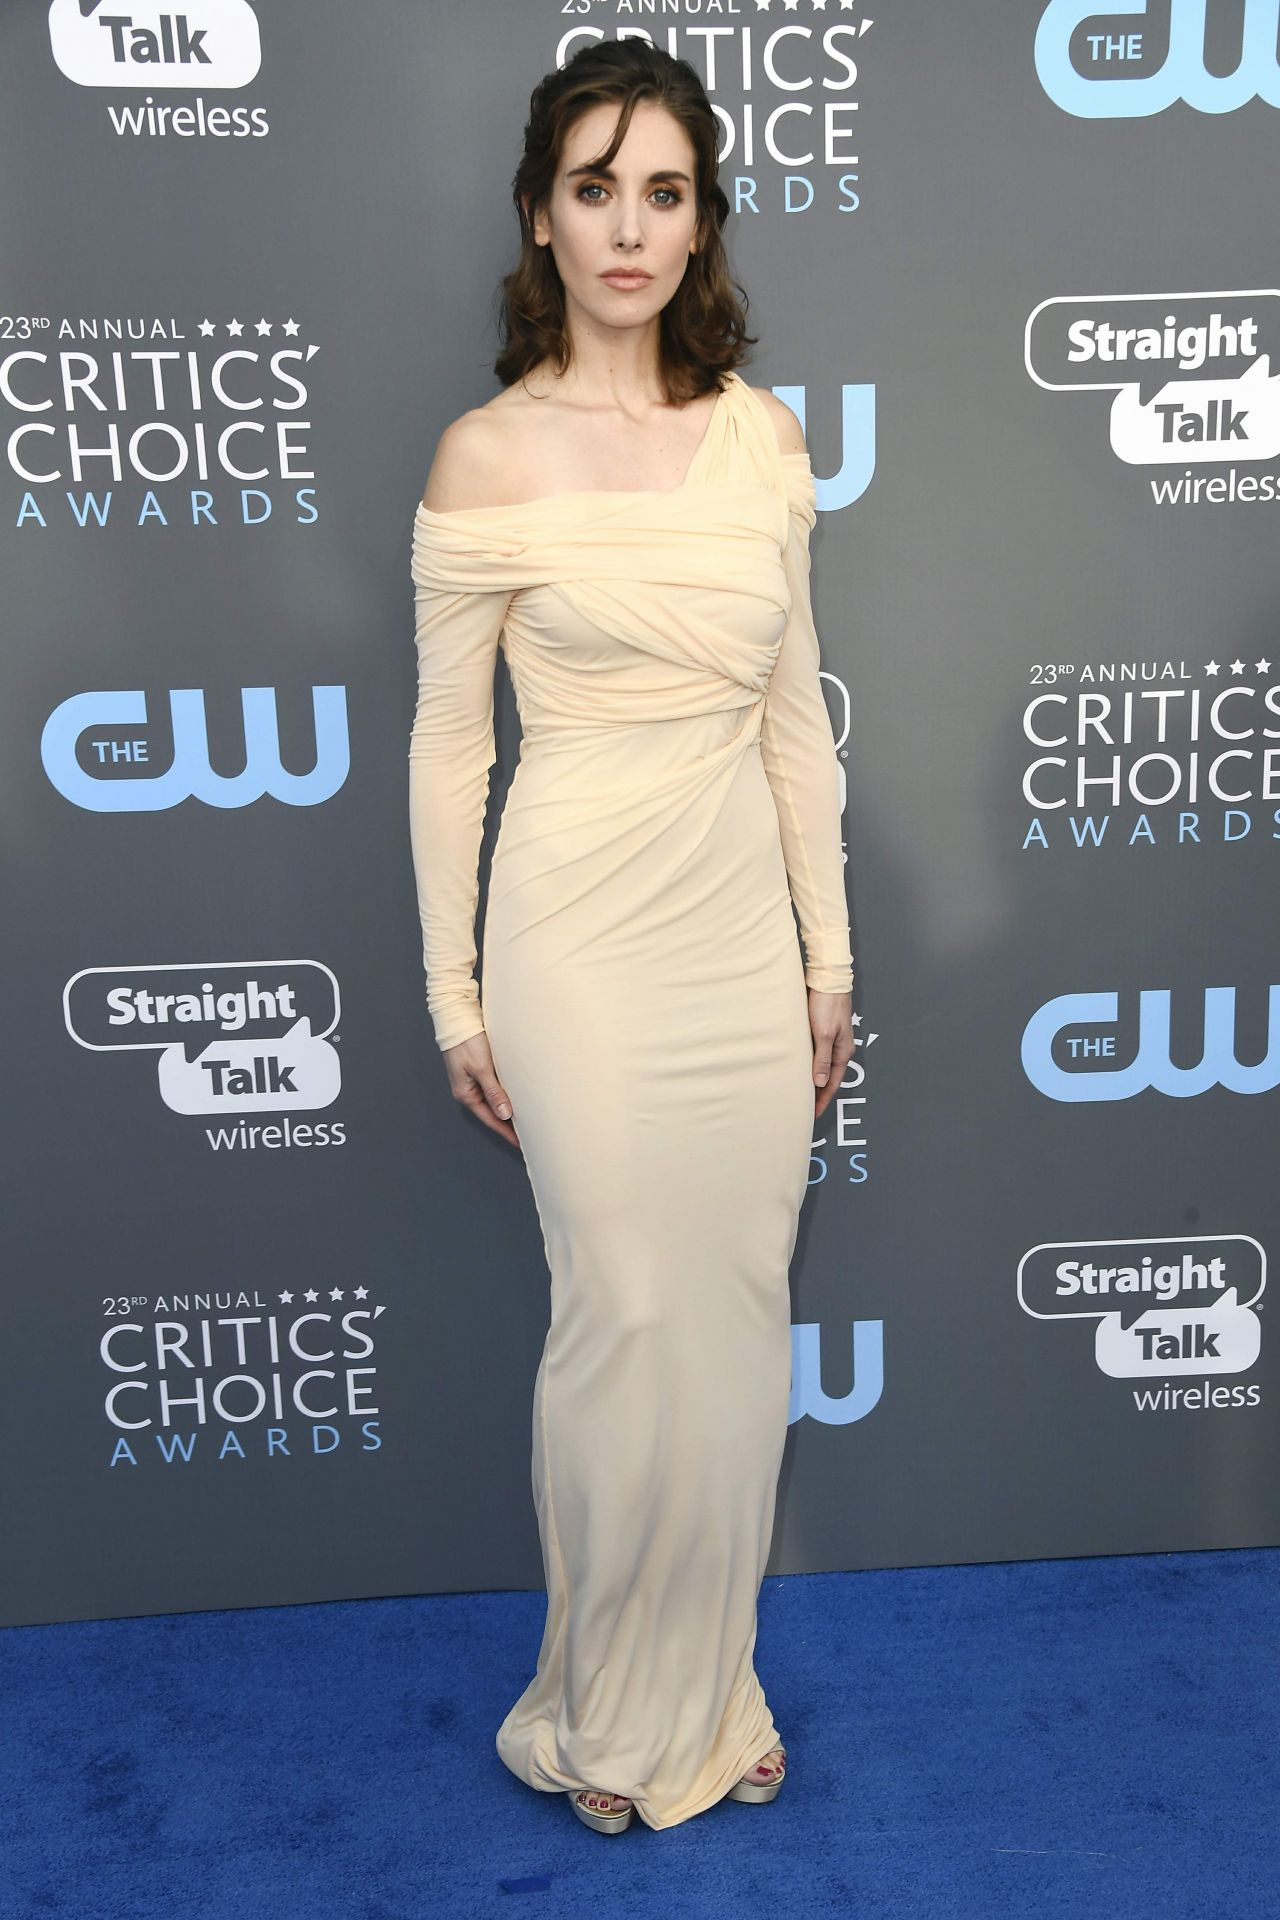 http://celebmafia.com/wp-content/uploads/2018/01/alison-brie-2018-critics-choice-awards-6.jpg